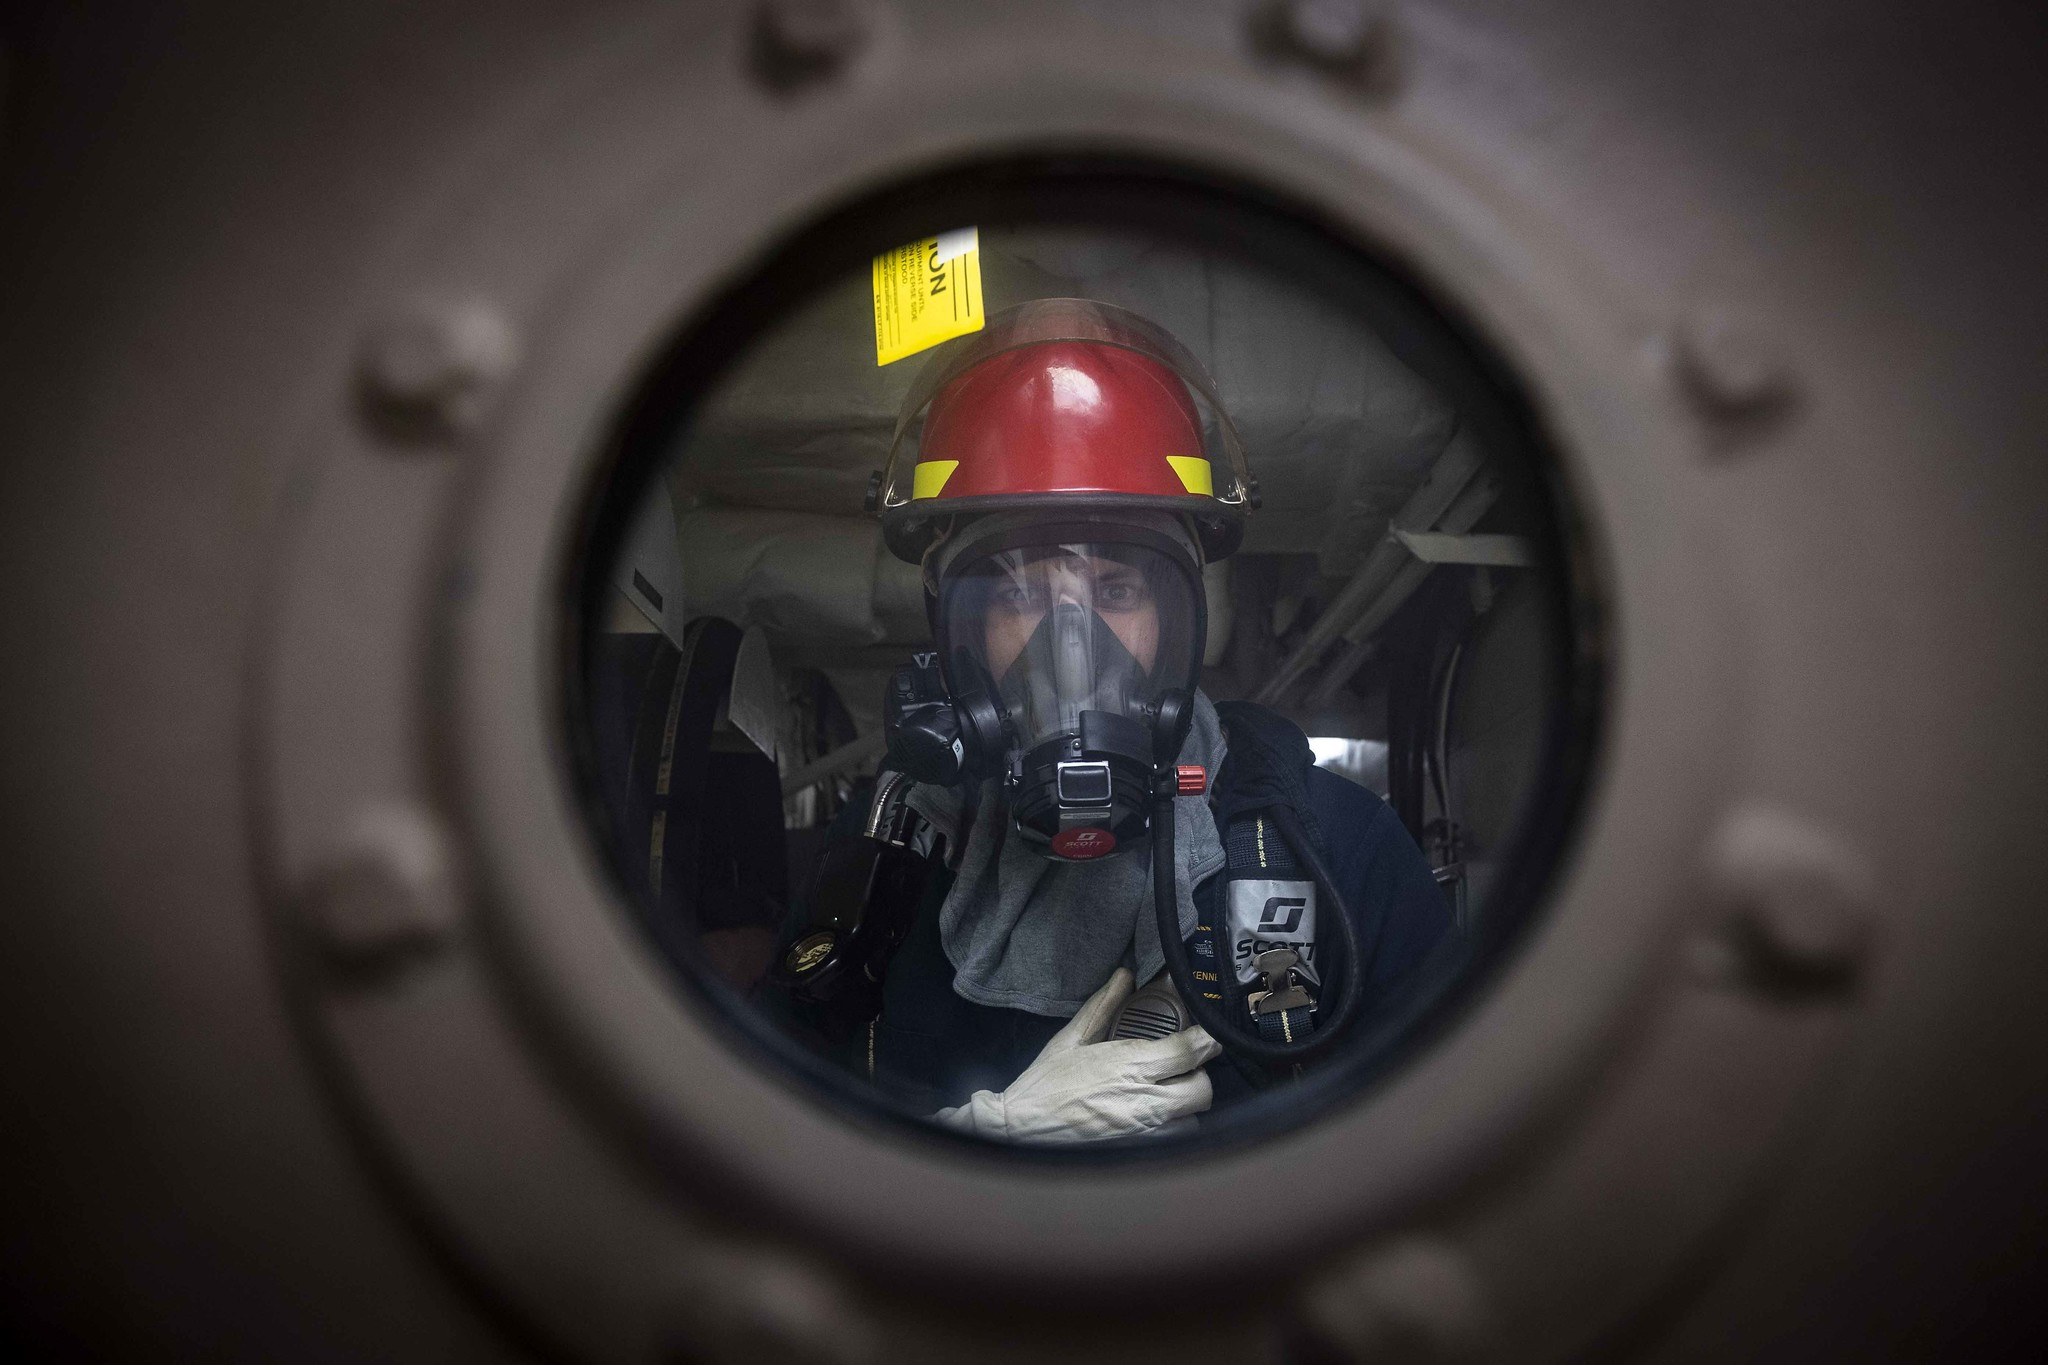 Chief Gunner's Mate Ken Marsh stands by as scene leader during a damage control drill aboard the Freedom-variant littoral combat ship USS Detroit (LCS 7) on July 3, 2020, in the Caribbean Sea. (MC2 Anderson W. Branch/Navy)